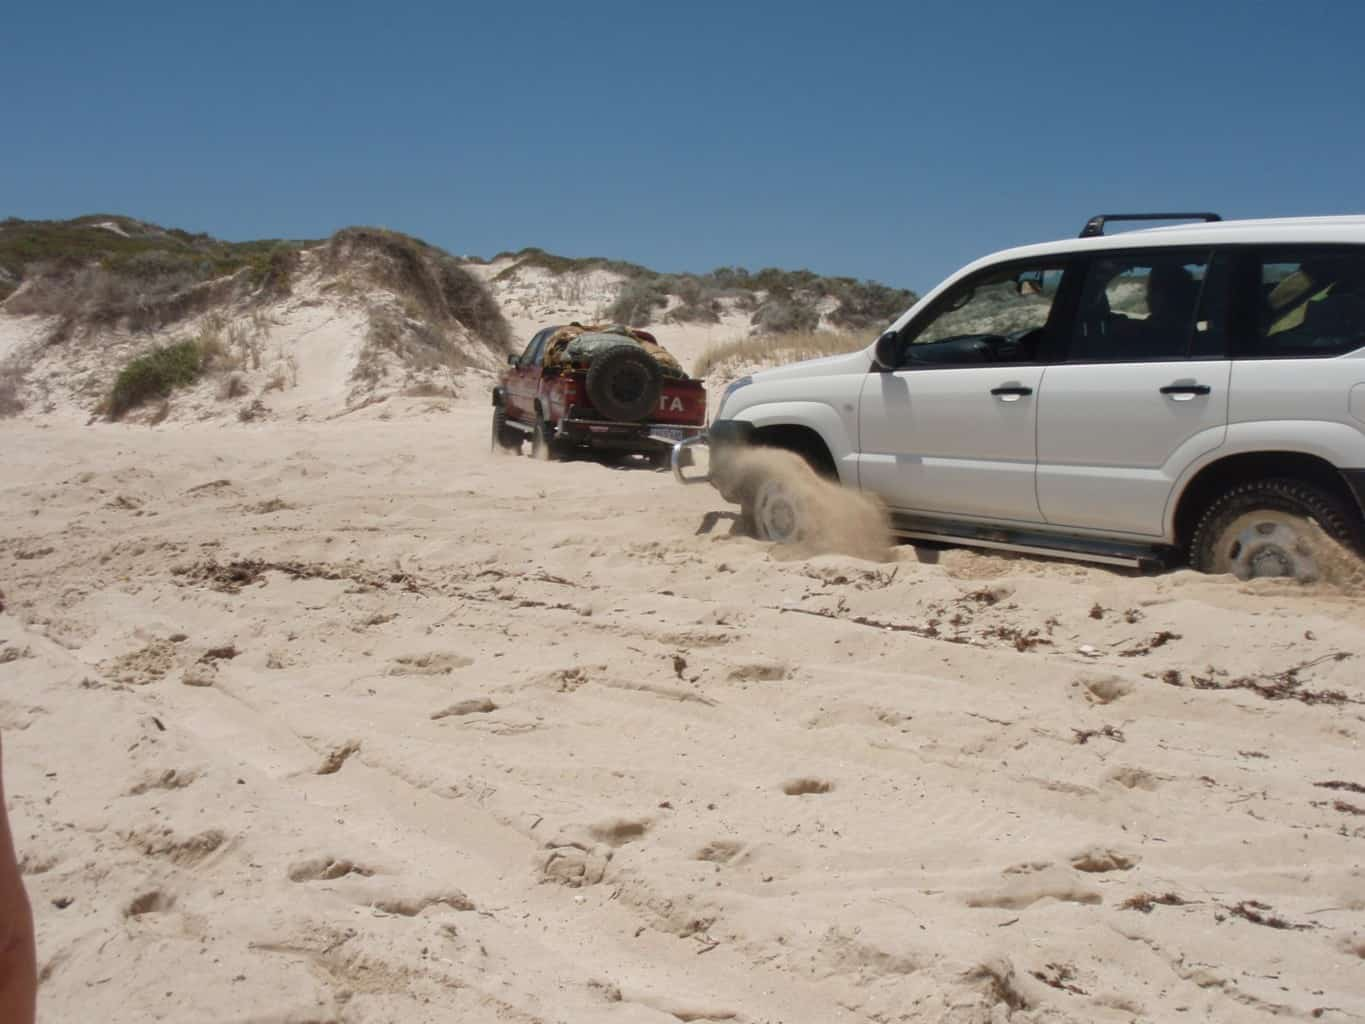 Pulling a car out of soft sand